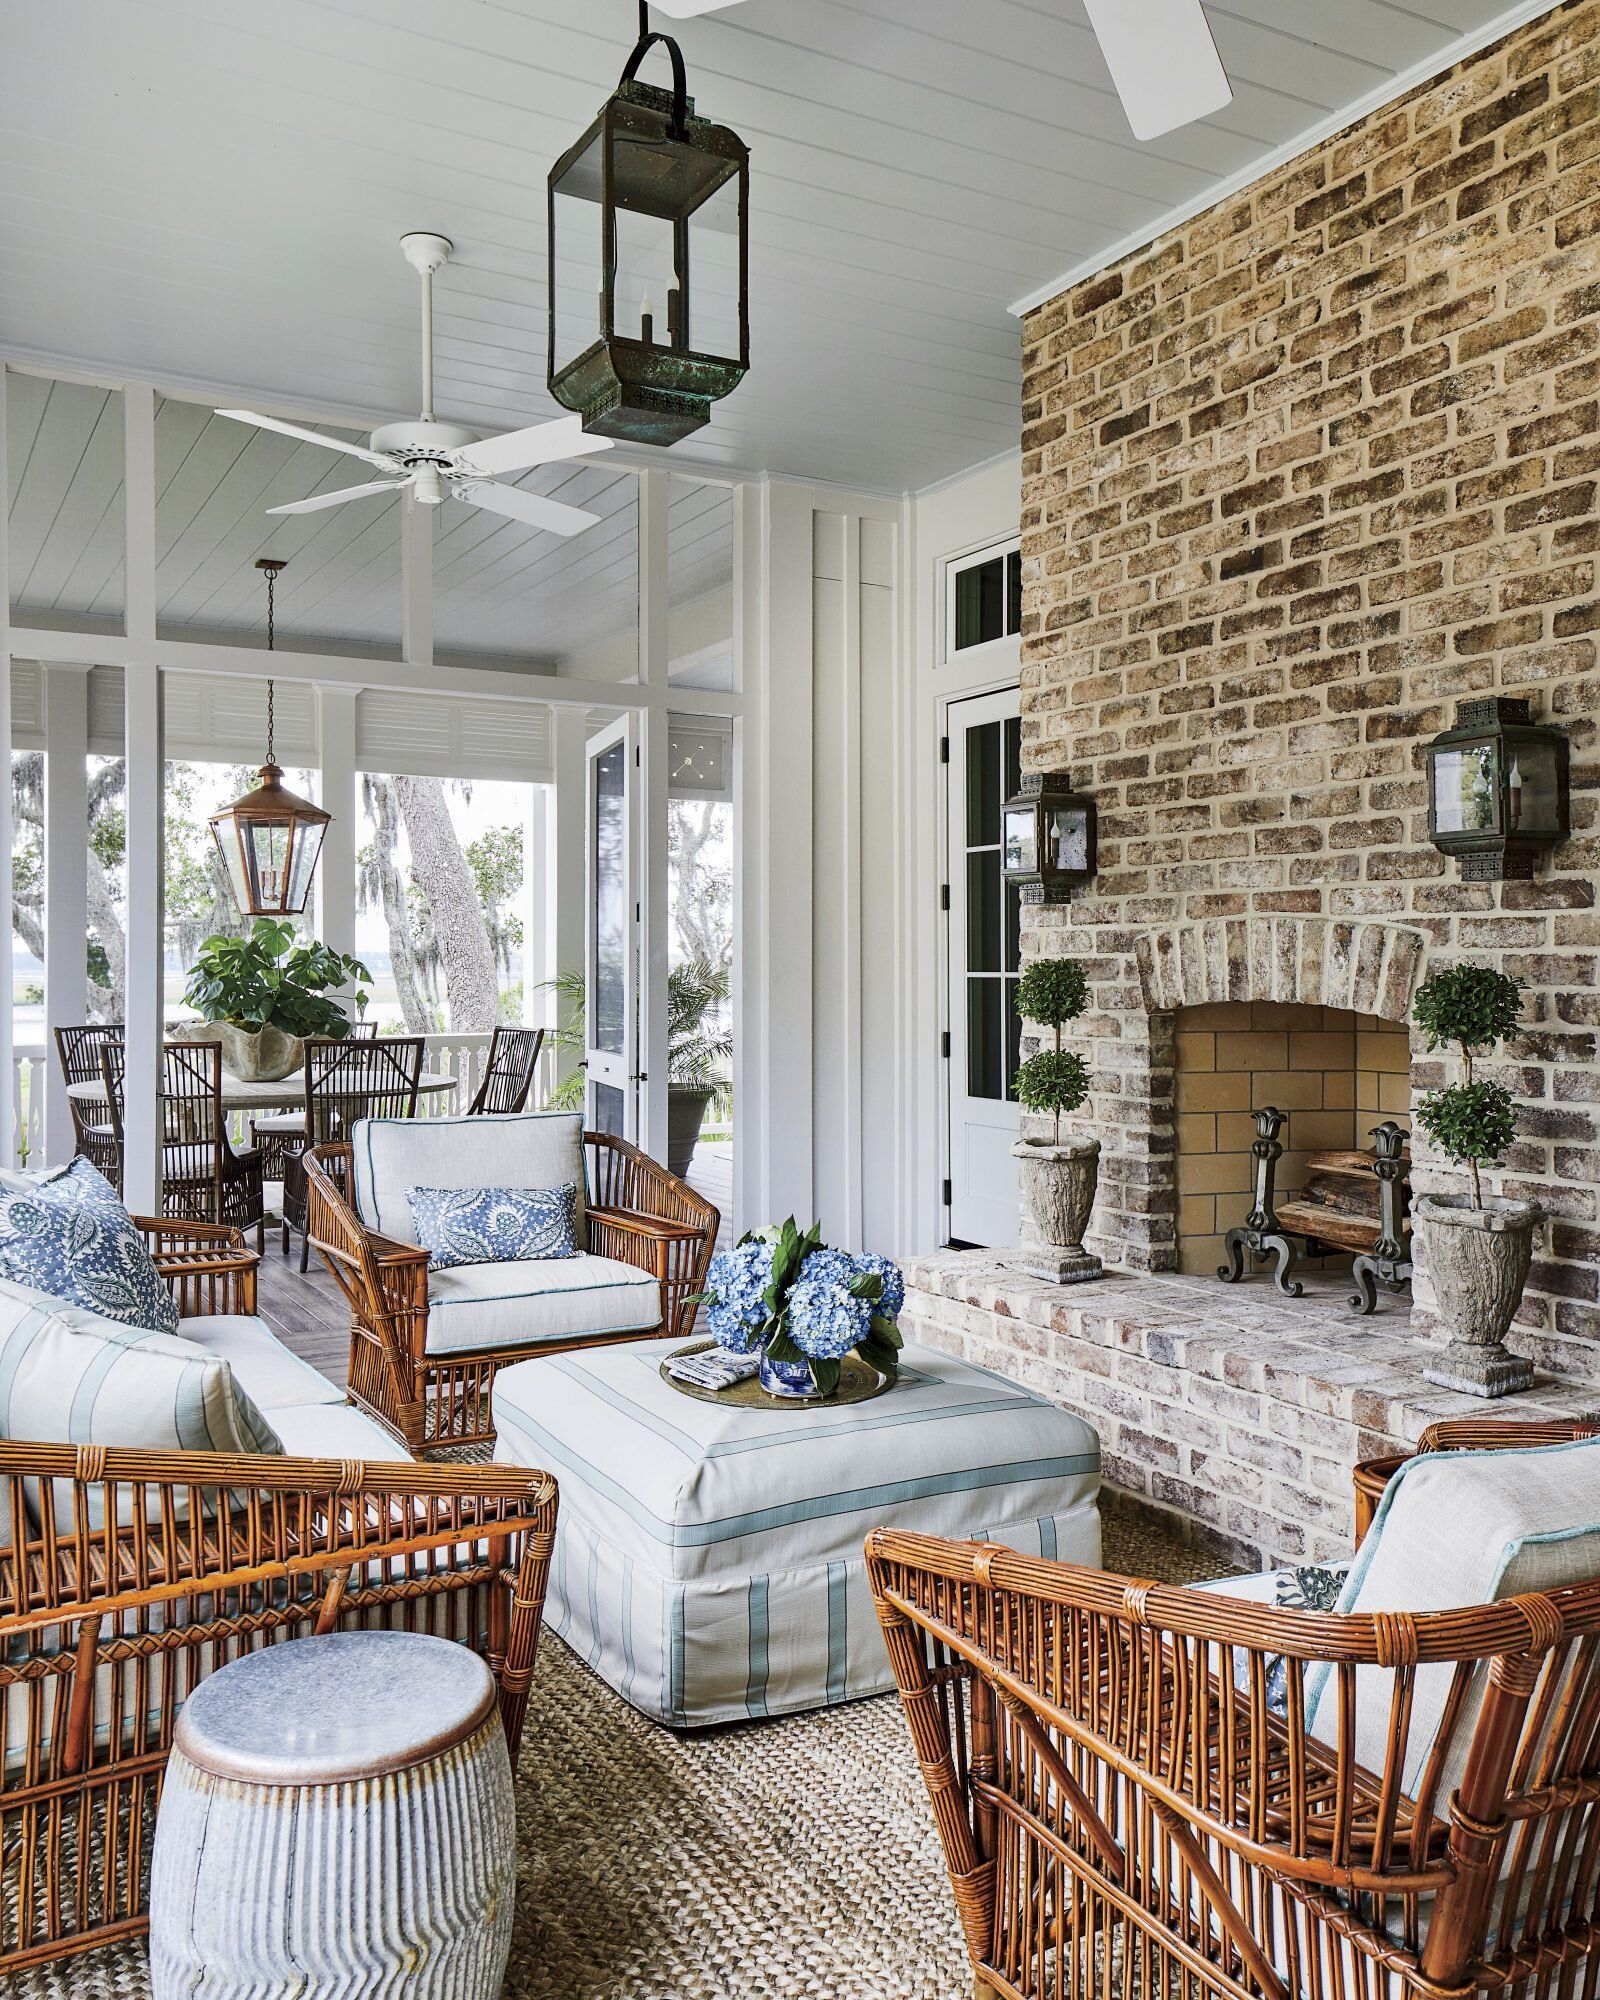 Tour The Ultimate Southern Dream House In 2020 Southern Living Homes Southern Living House Plans Southern Homes